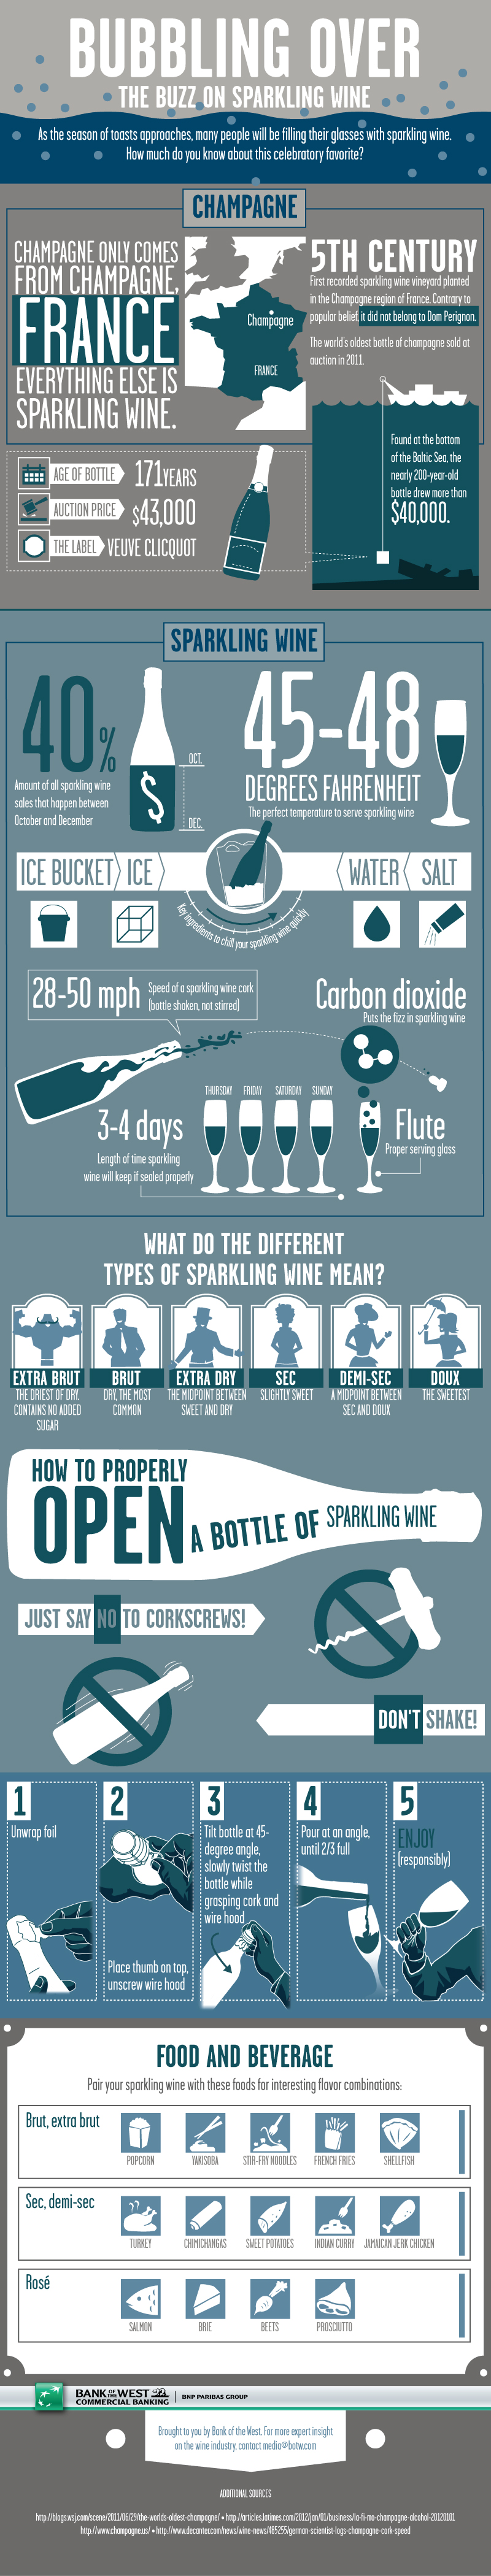 bubbling-over-the-buzz-on-sparkling-wine_50d3722a0de44